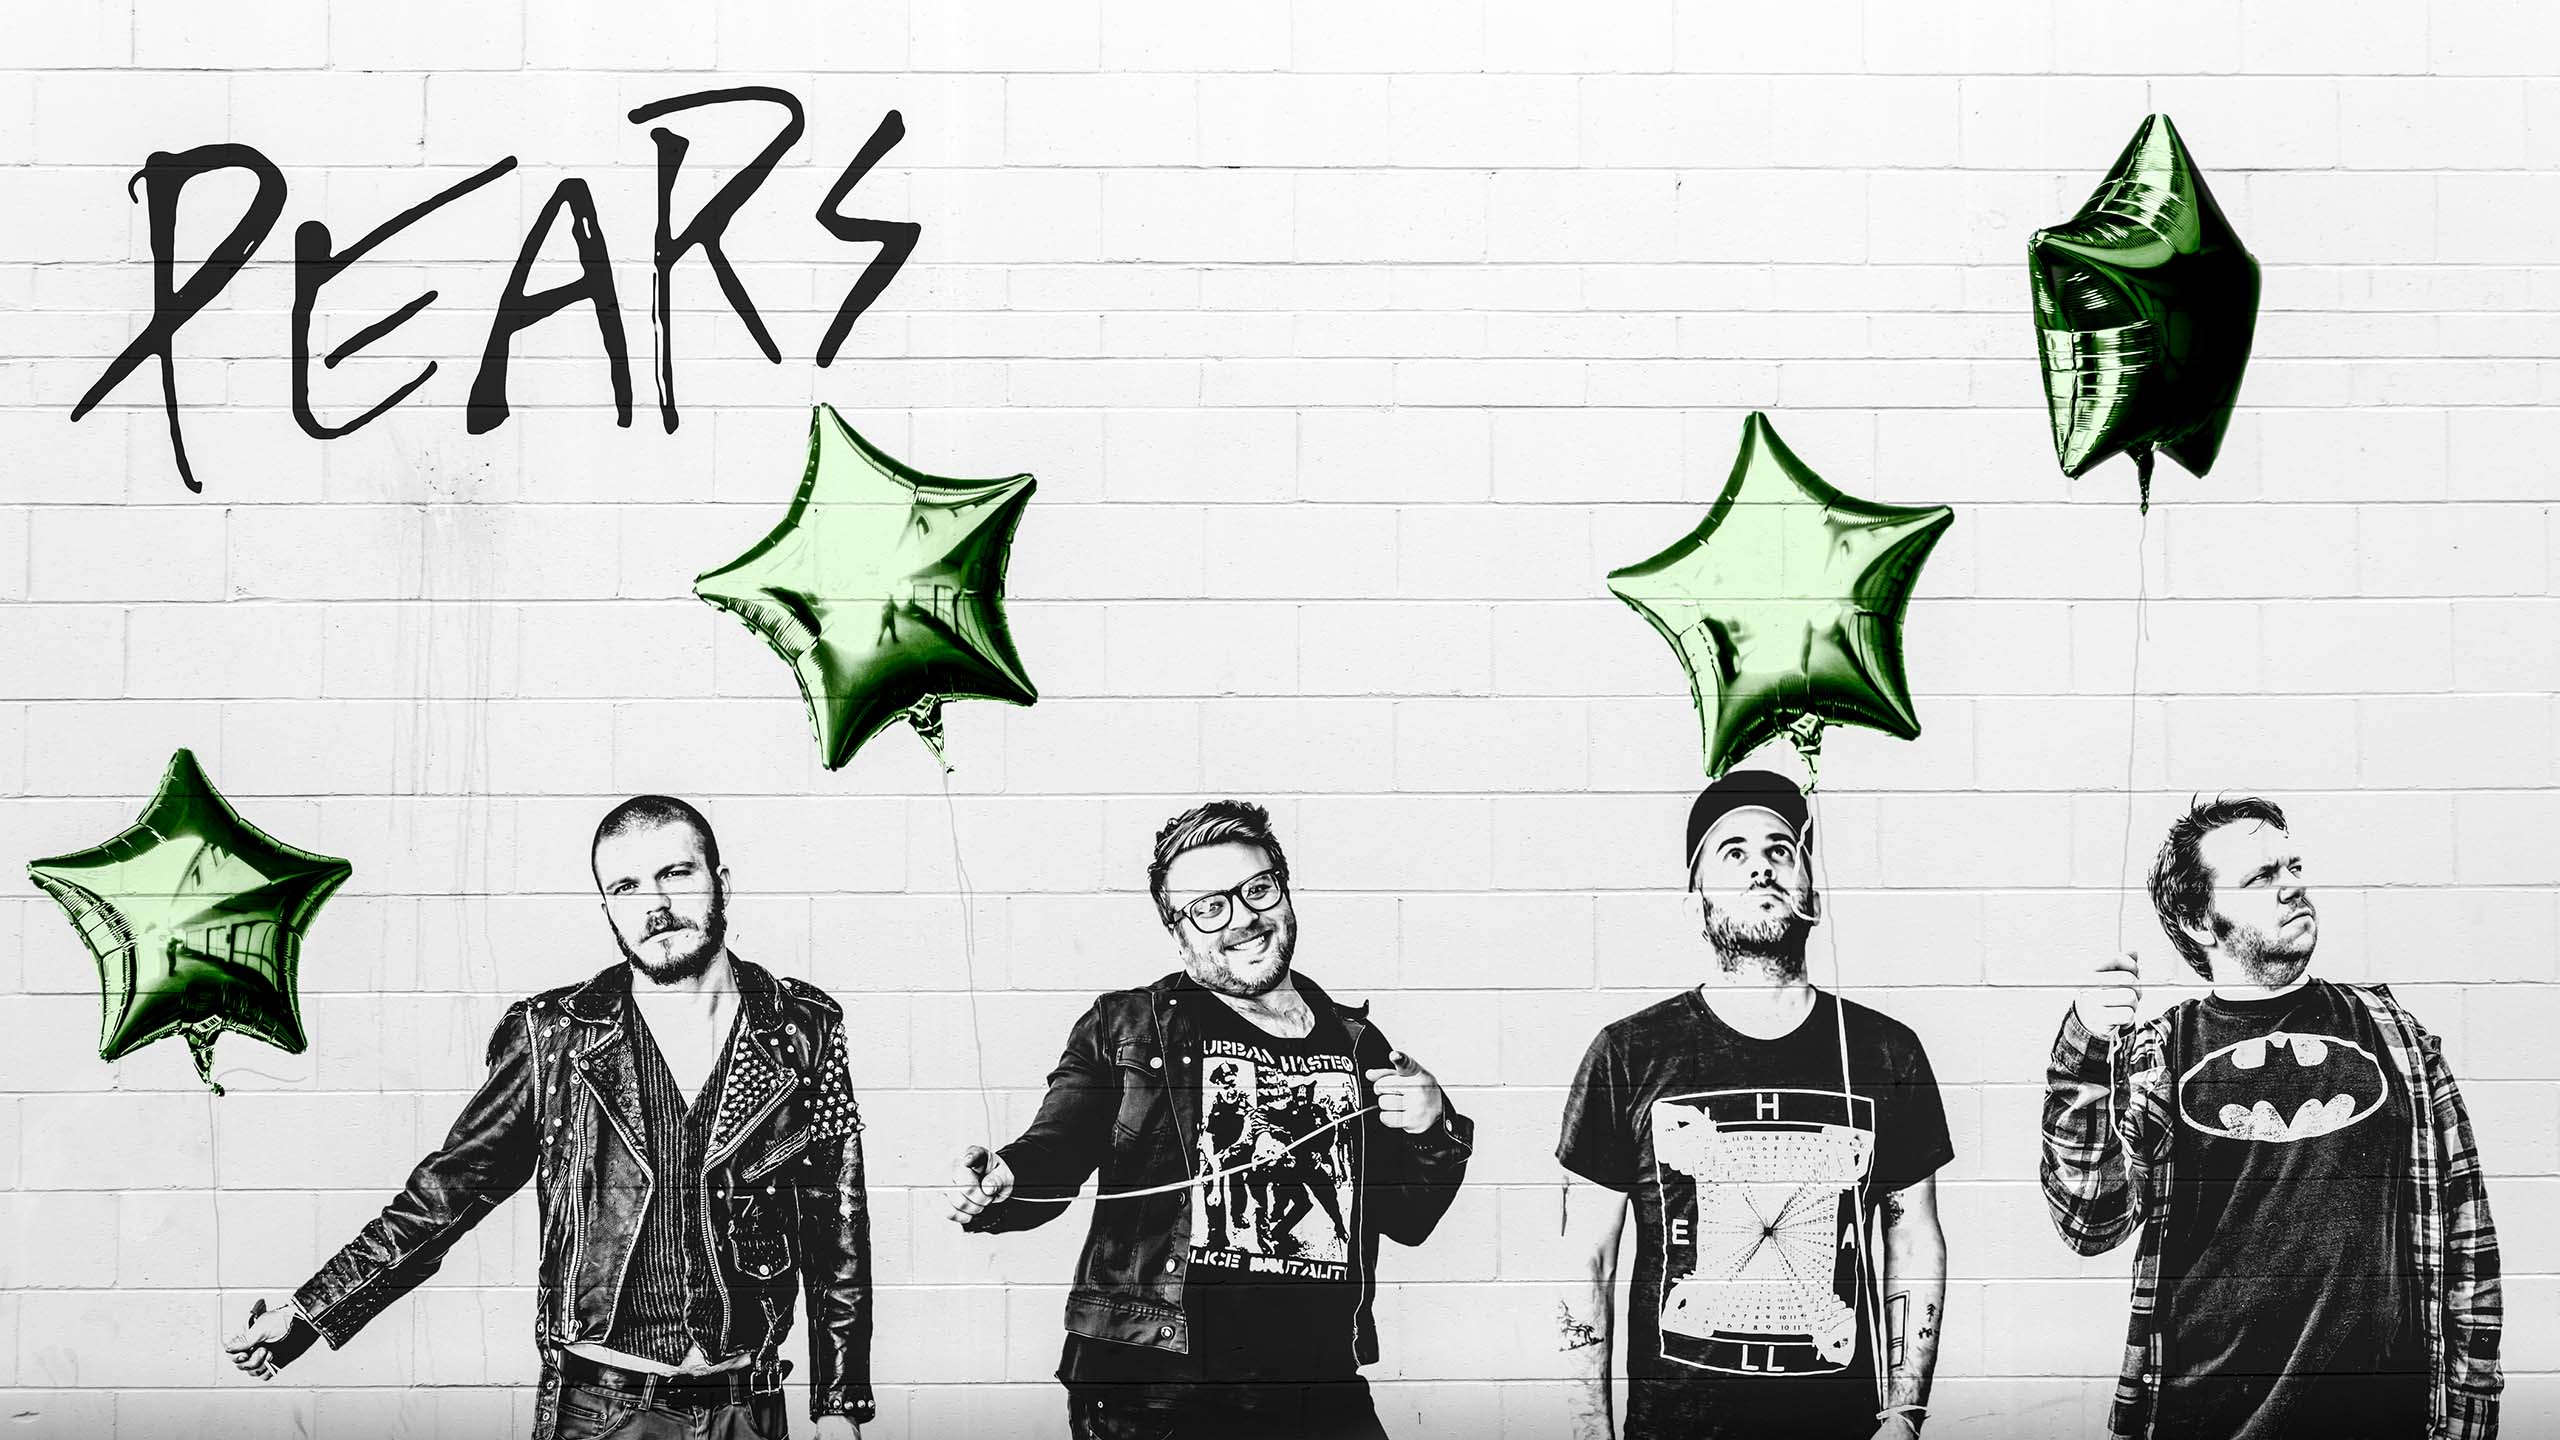 PEARS THE BAND - Green Star Wall - Photo by John Paul Allen